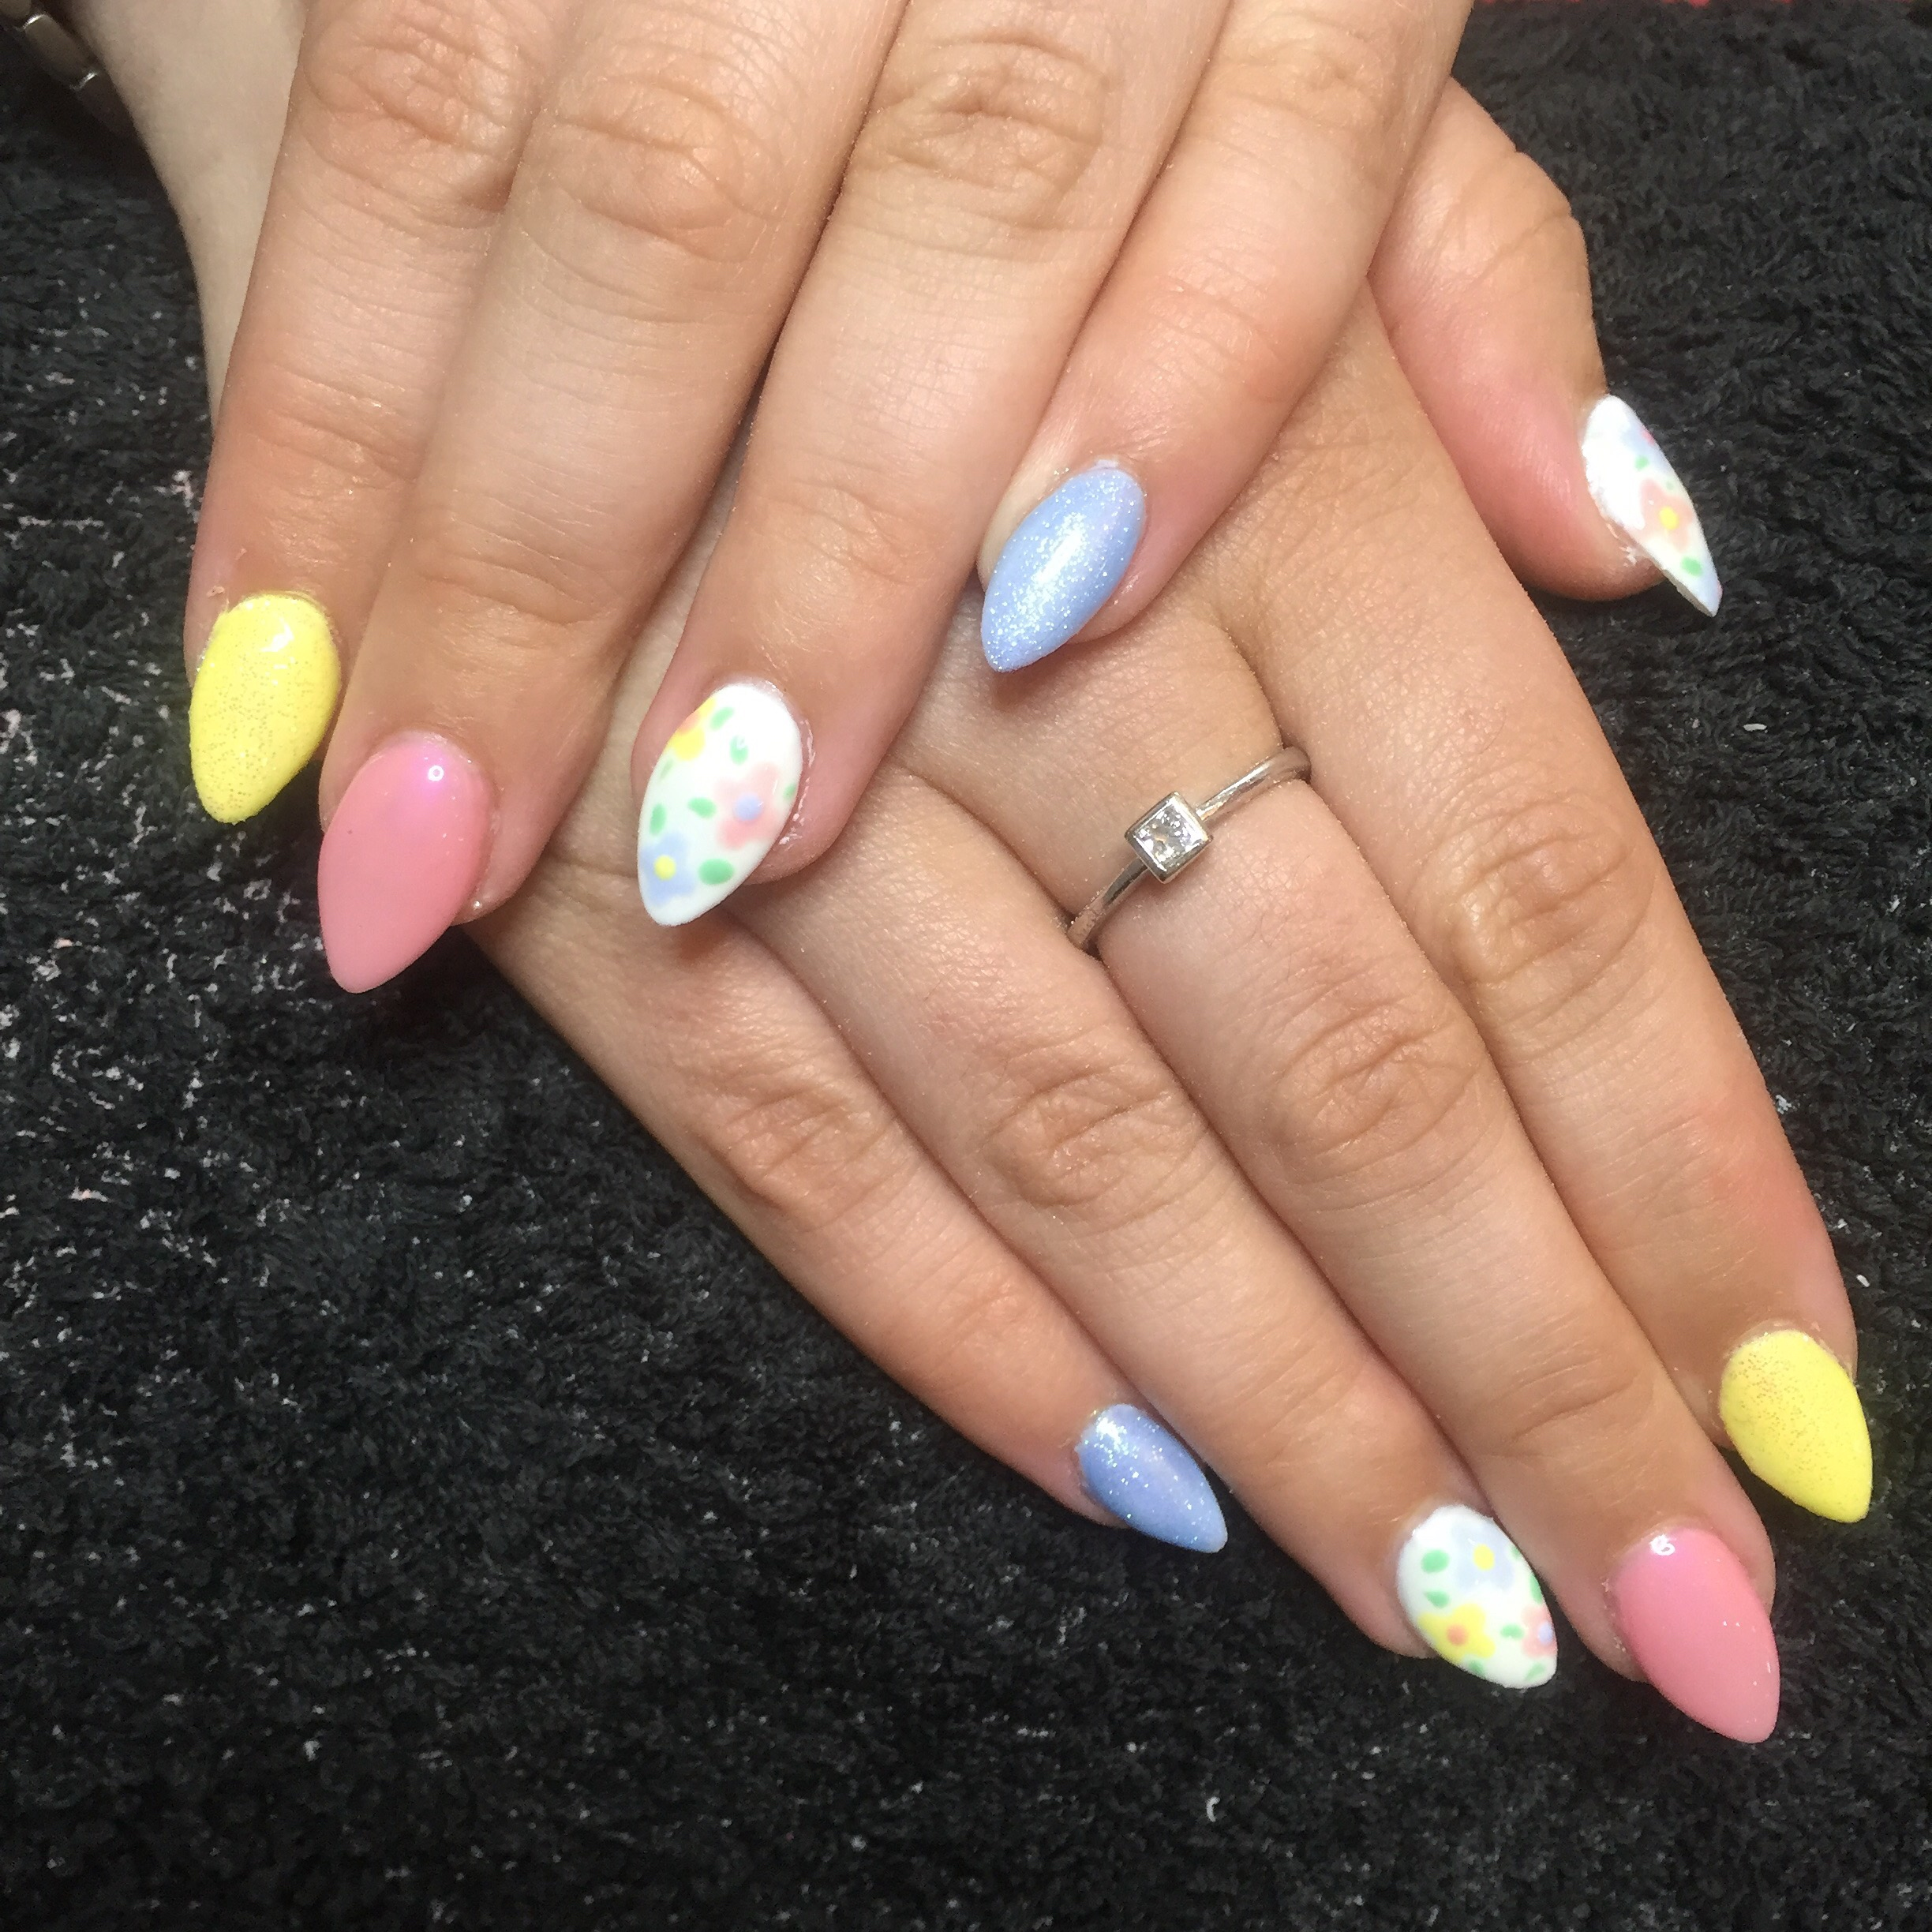 Pastel Almond Nails | Trendy Almond Nail Designs You Should Try | acrylic nails almond shaped